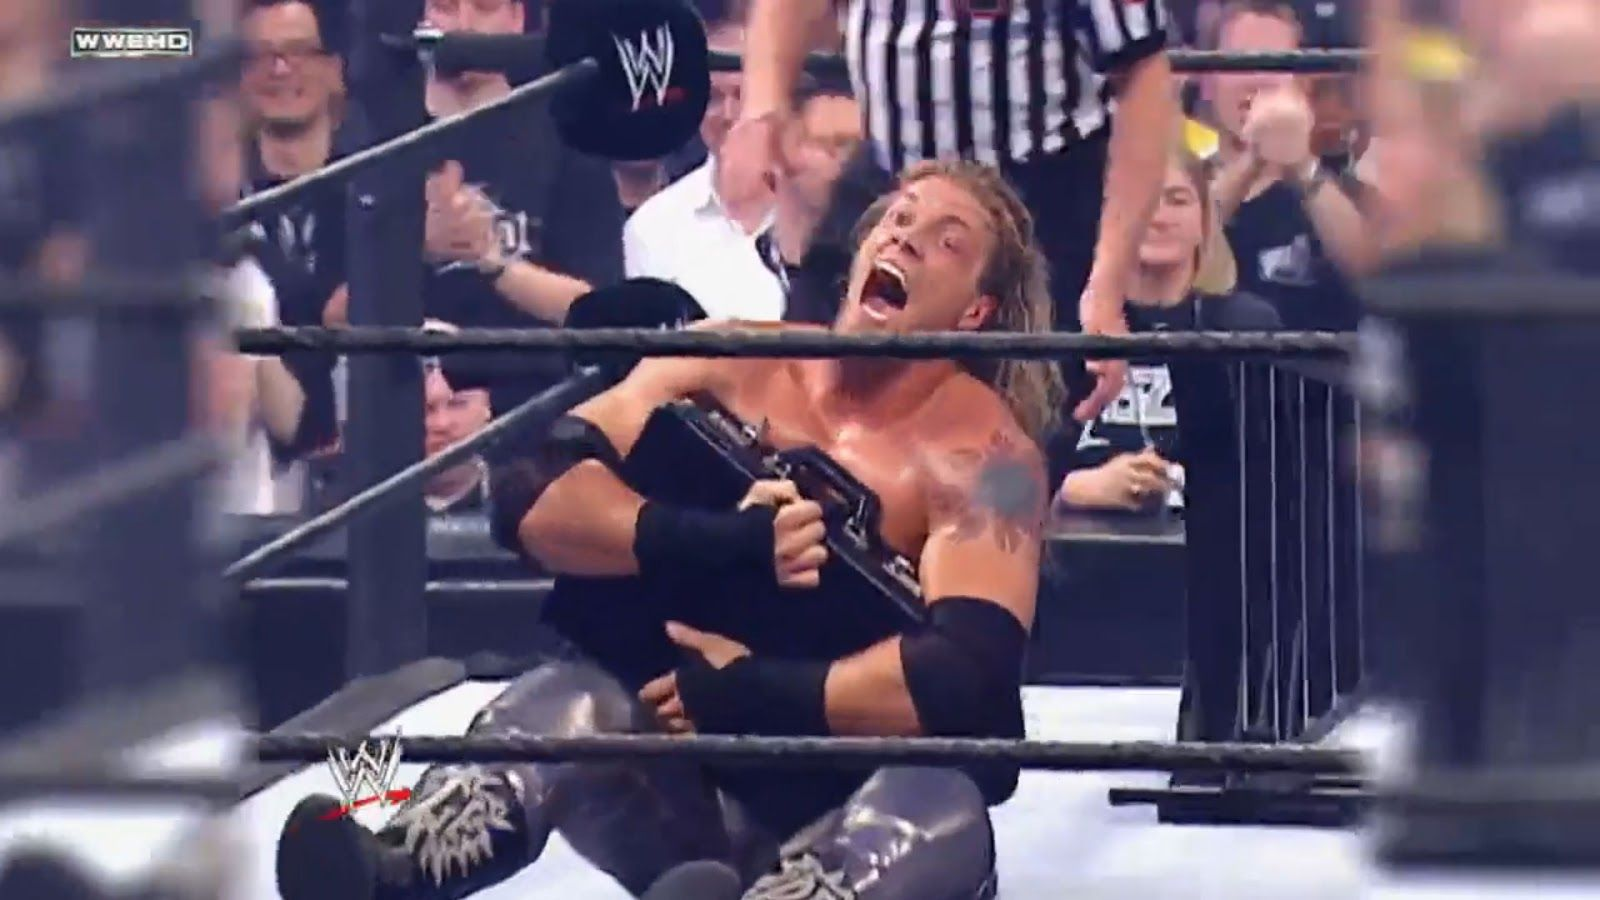 The Best Wrestlemania Matches: The First Money in the Bank Match